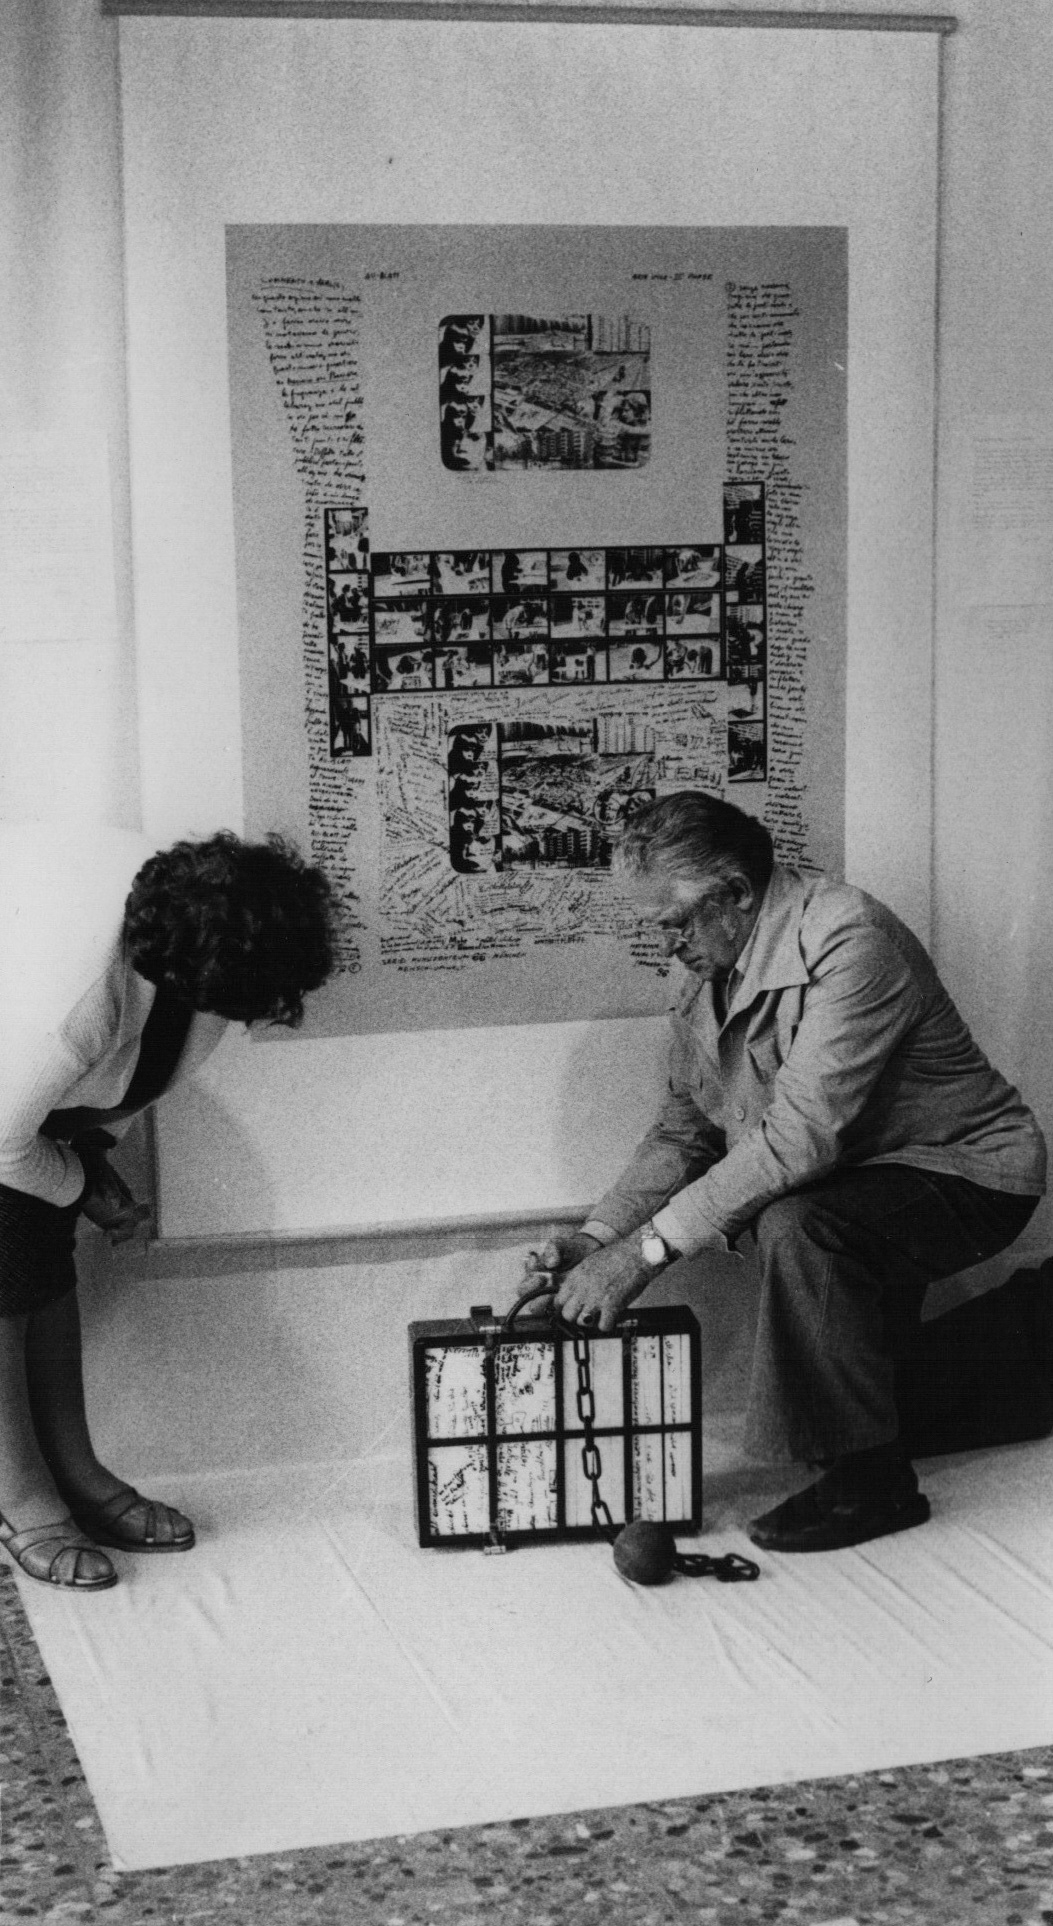 A white cloth covers partly a wall and also stretches over the floor. On the wall hanngs a large sheet with several collages and lots of handwritten text. Two persons standing on the white cloth.